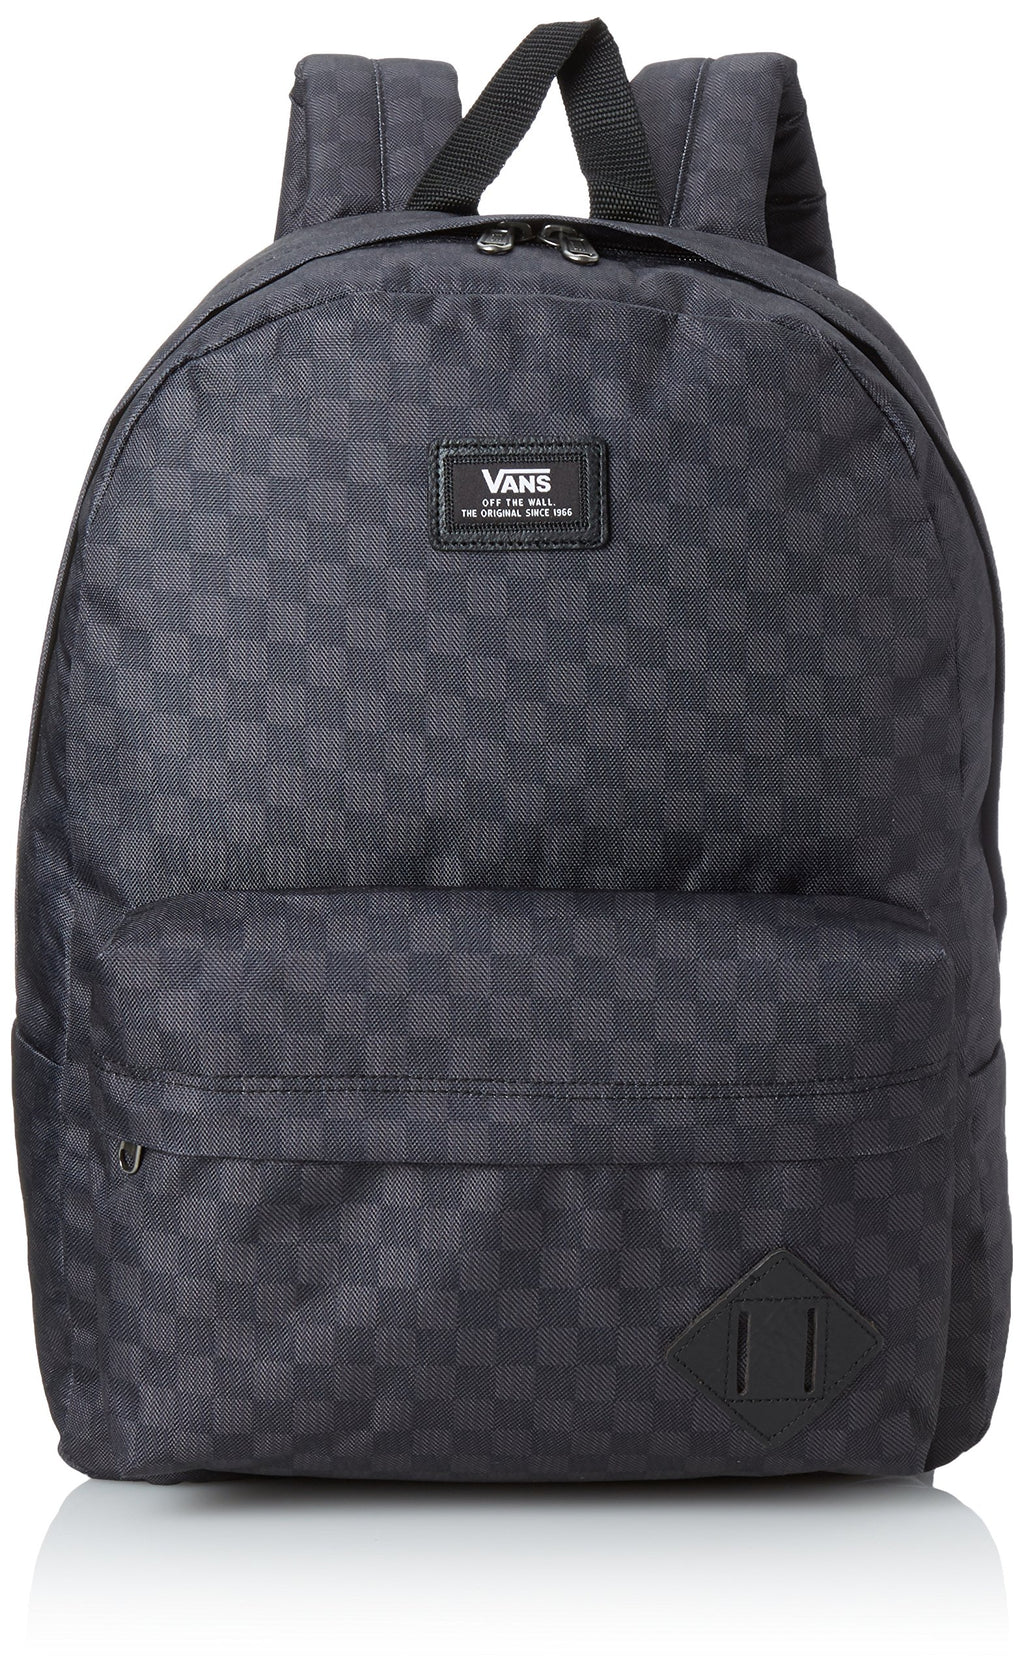 Vans Old Skool Ii Backpack Zaino Casual, 42 Cm, 22 Liters, Nero (Black/Charcoal) Marche Famose